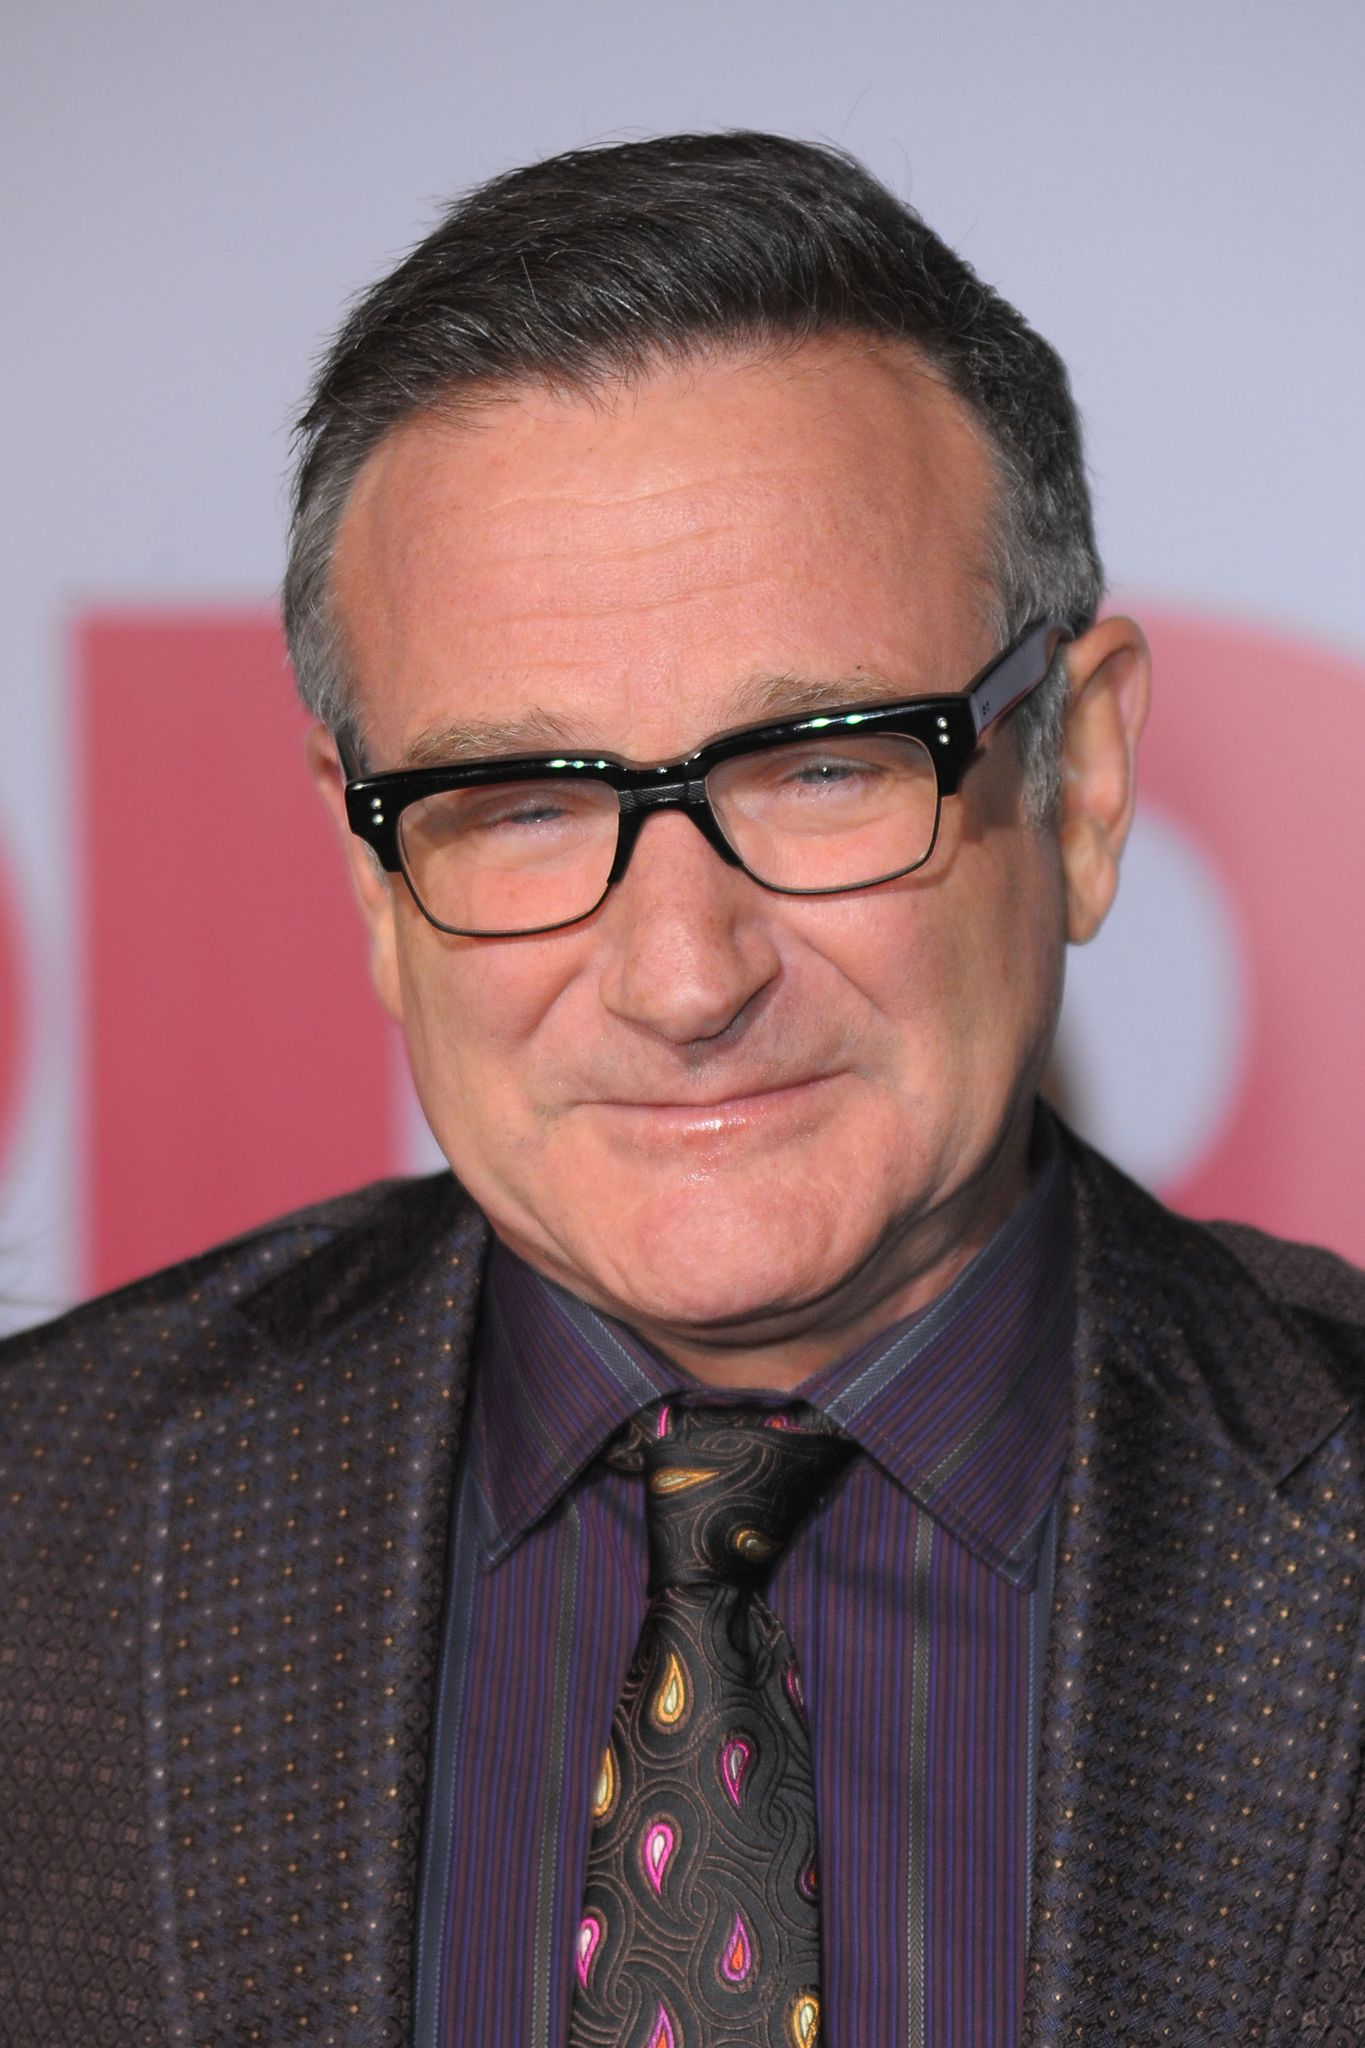 Robin Williams at the premiere of Walt Disney Pictures' 'Old Dogs' at the El Capitan Theatre on November 9, 2009 in Hollywood, California. | Photo: Getty Images